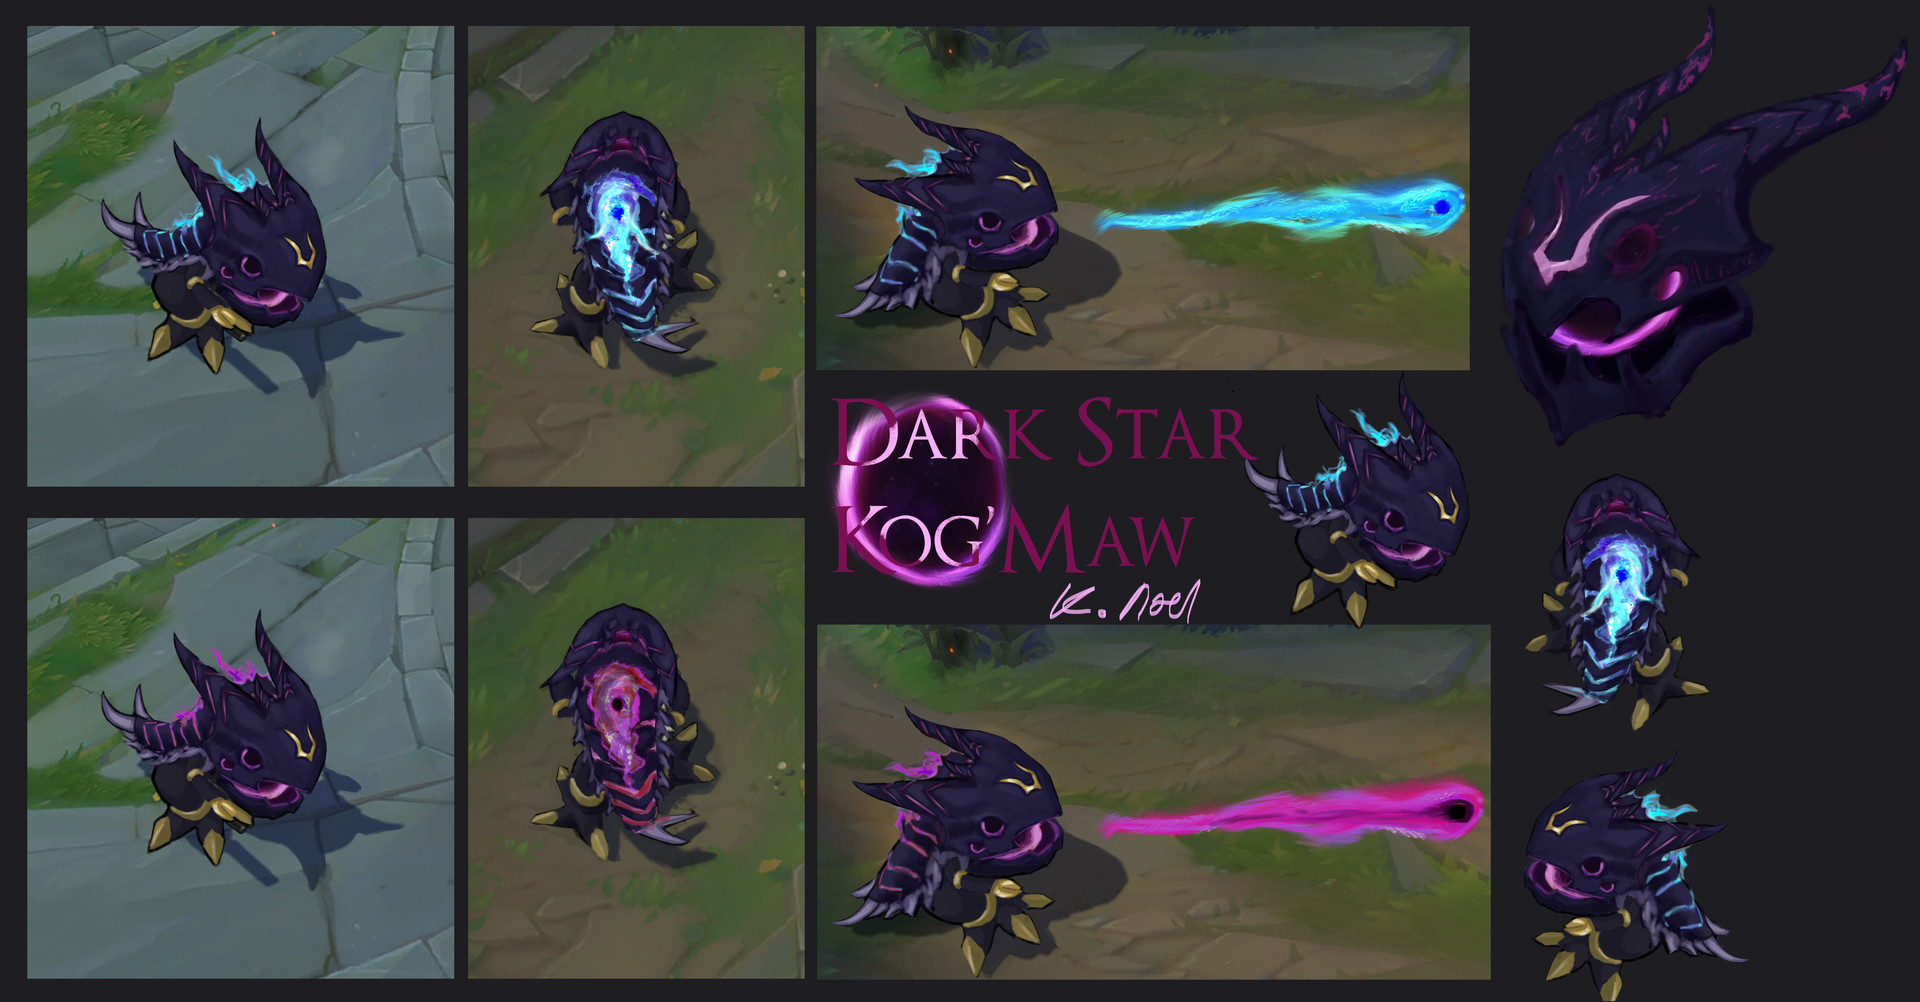 Isometric In-Game concepts of Kog'Maw both normally and when using his W -  Bio Arcane Barrage.